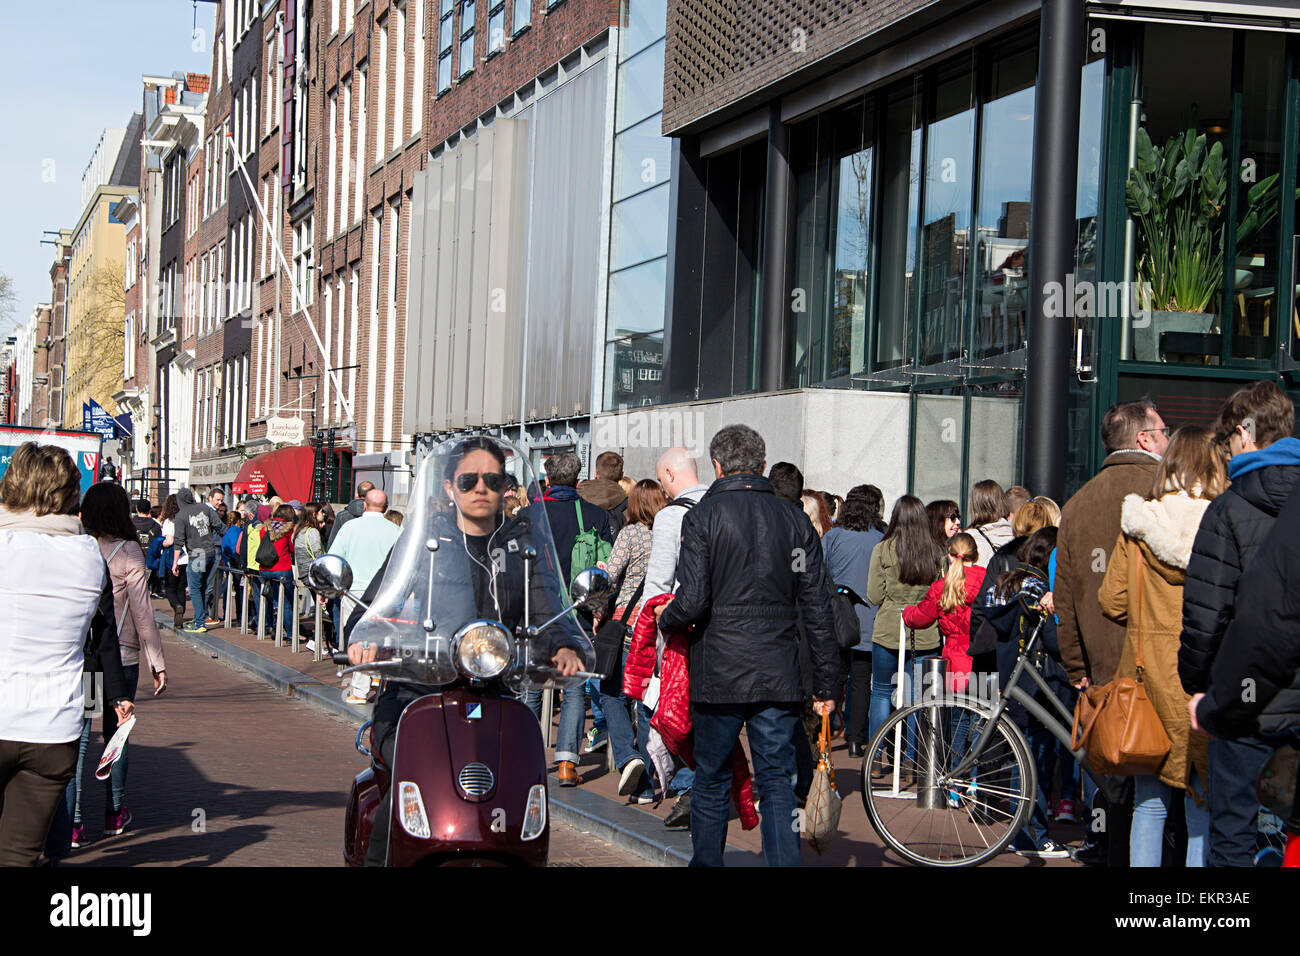 Long queues of people wait to go into the historic Anne Frank house. - Stock Image